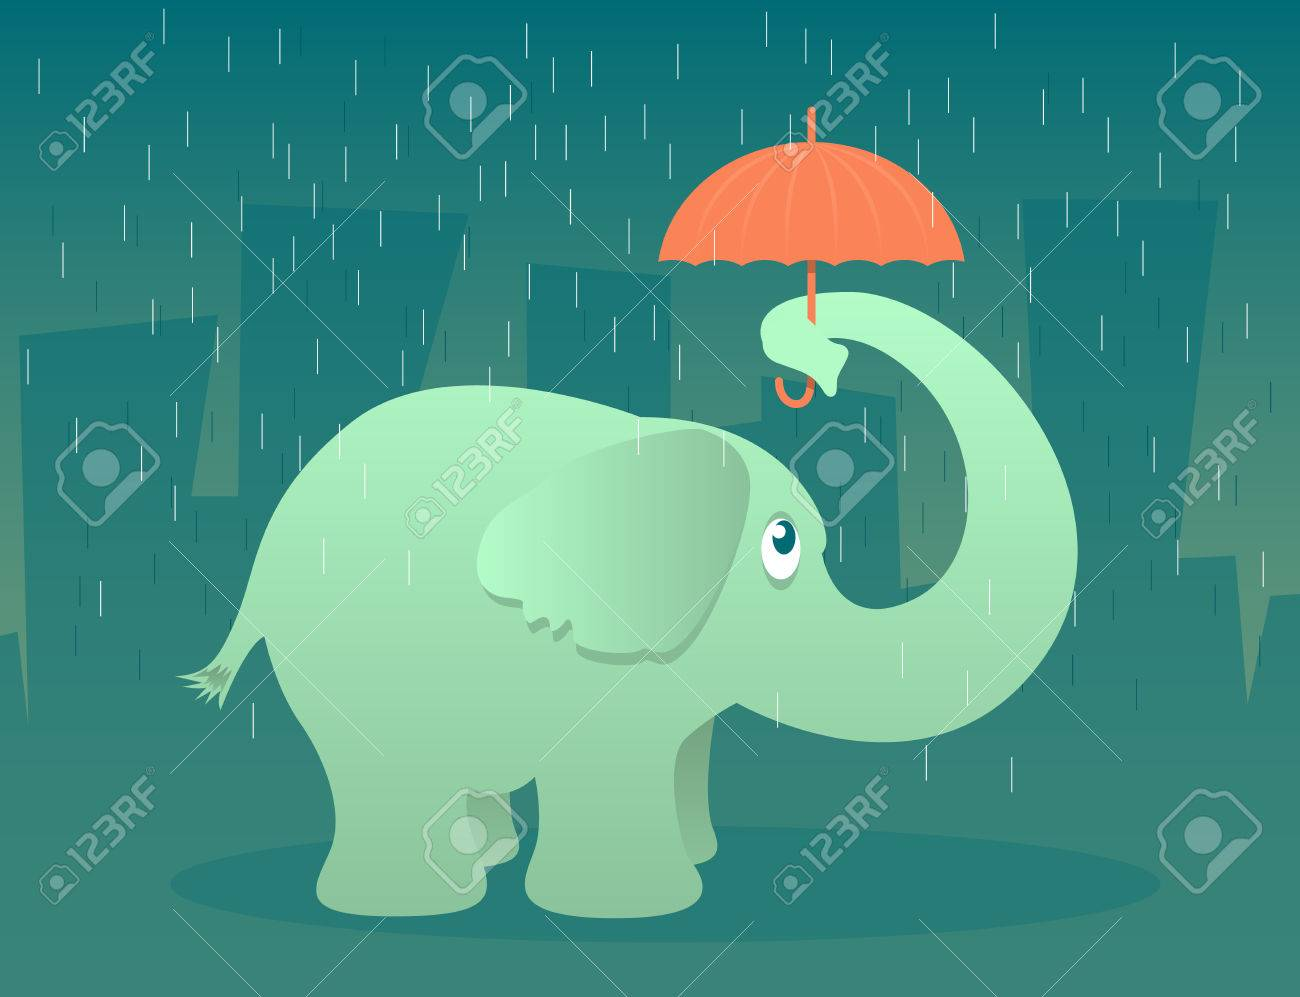 Illustration of an elephant standing in the rain under a tiny